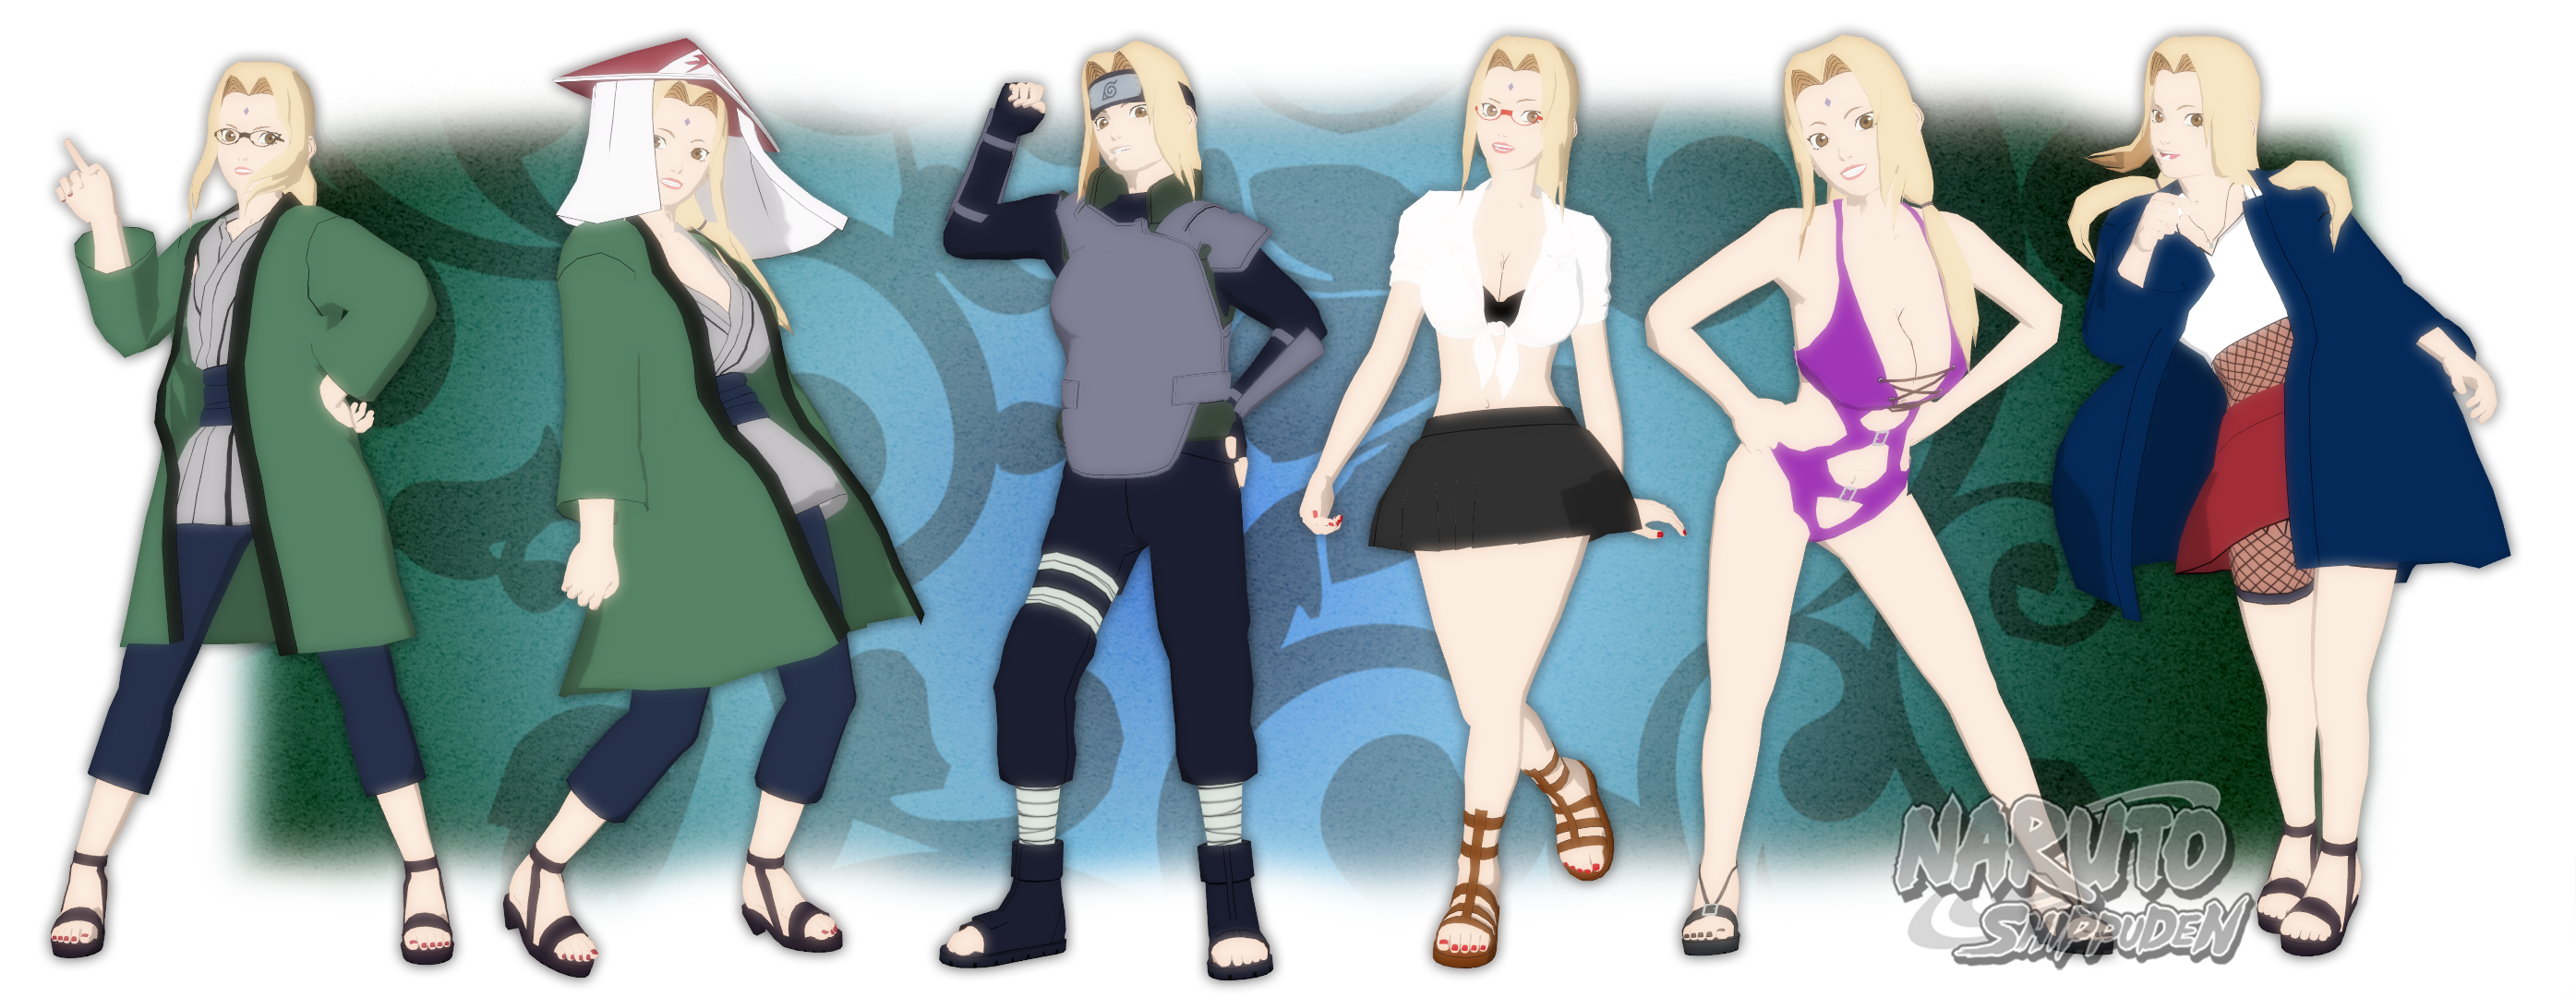 [3] MMD Naruto Model Index by leaopardheart on DeviantArt